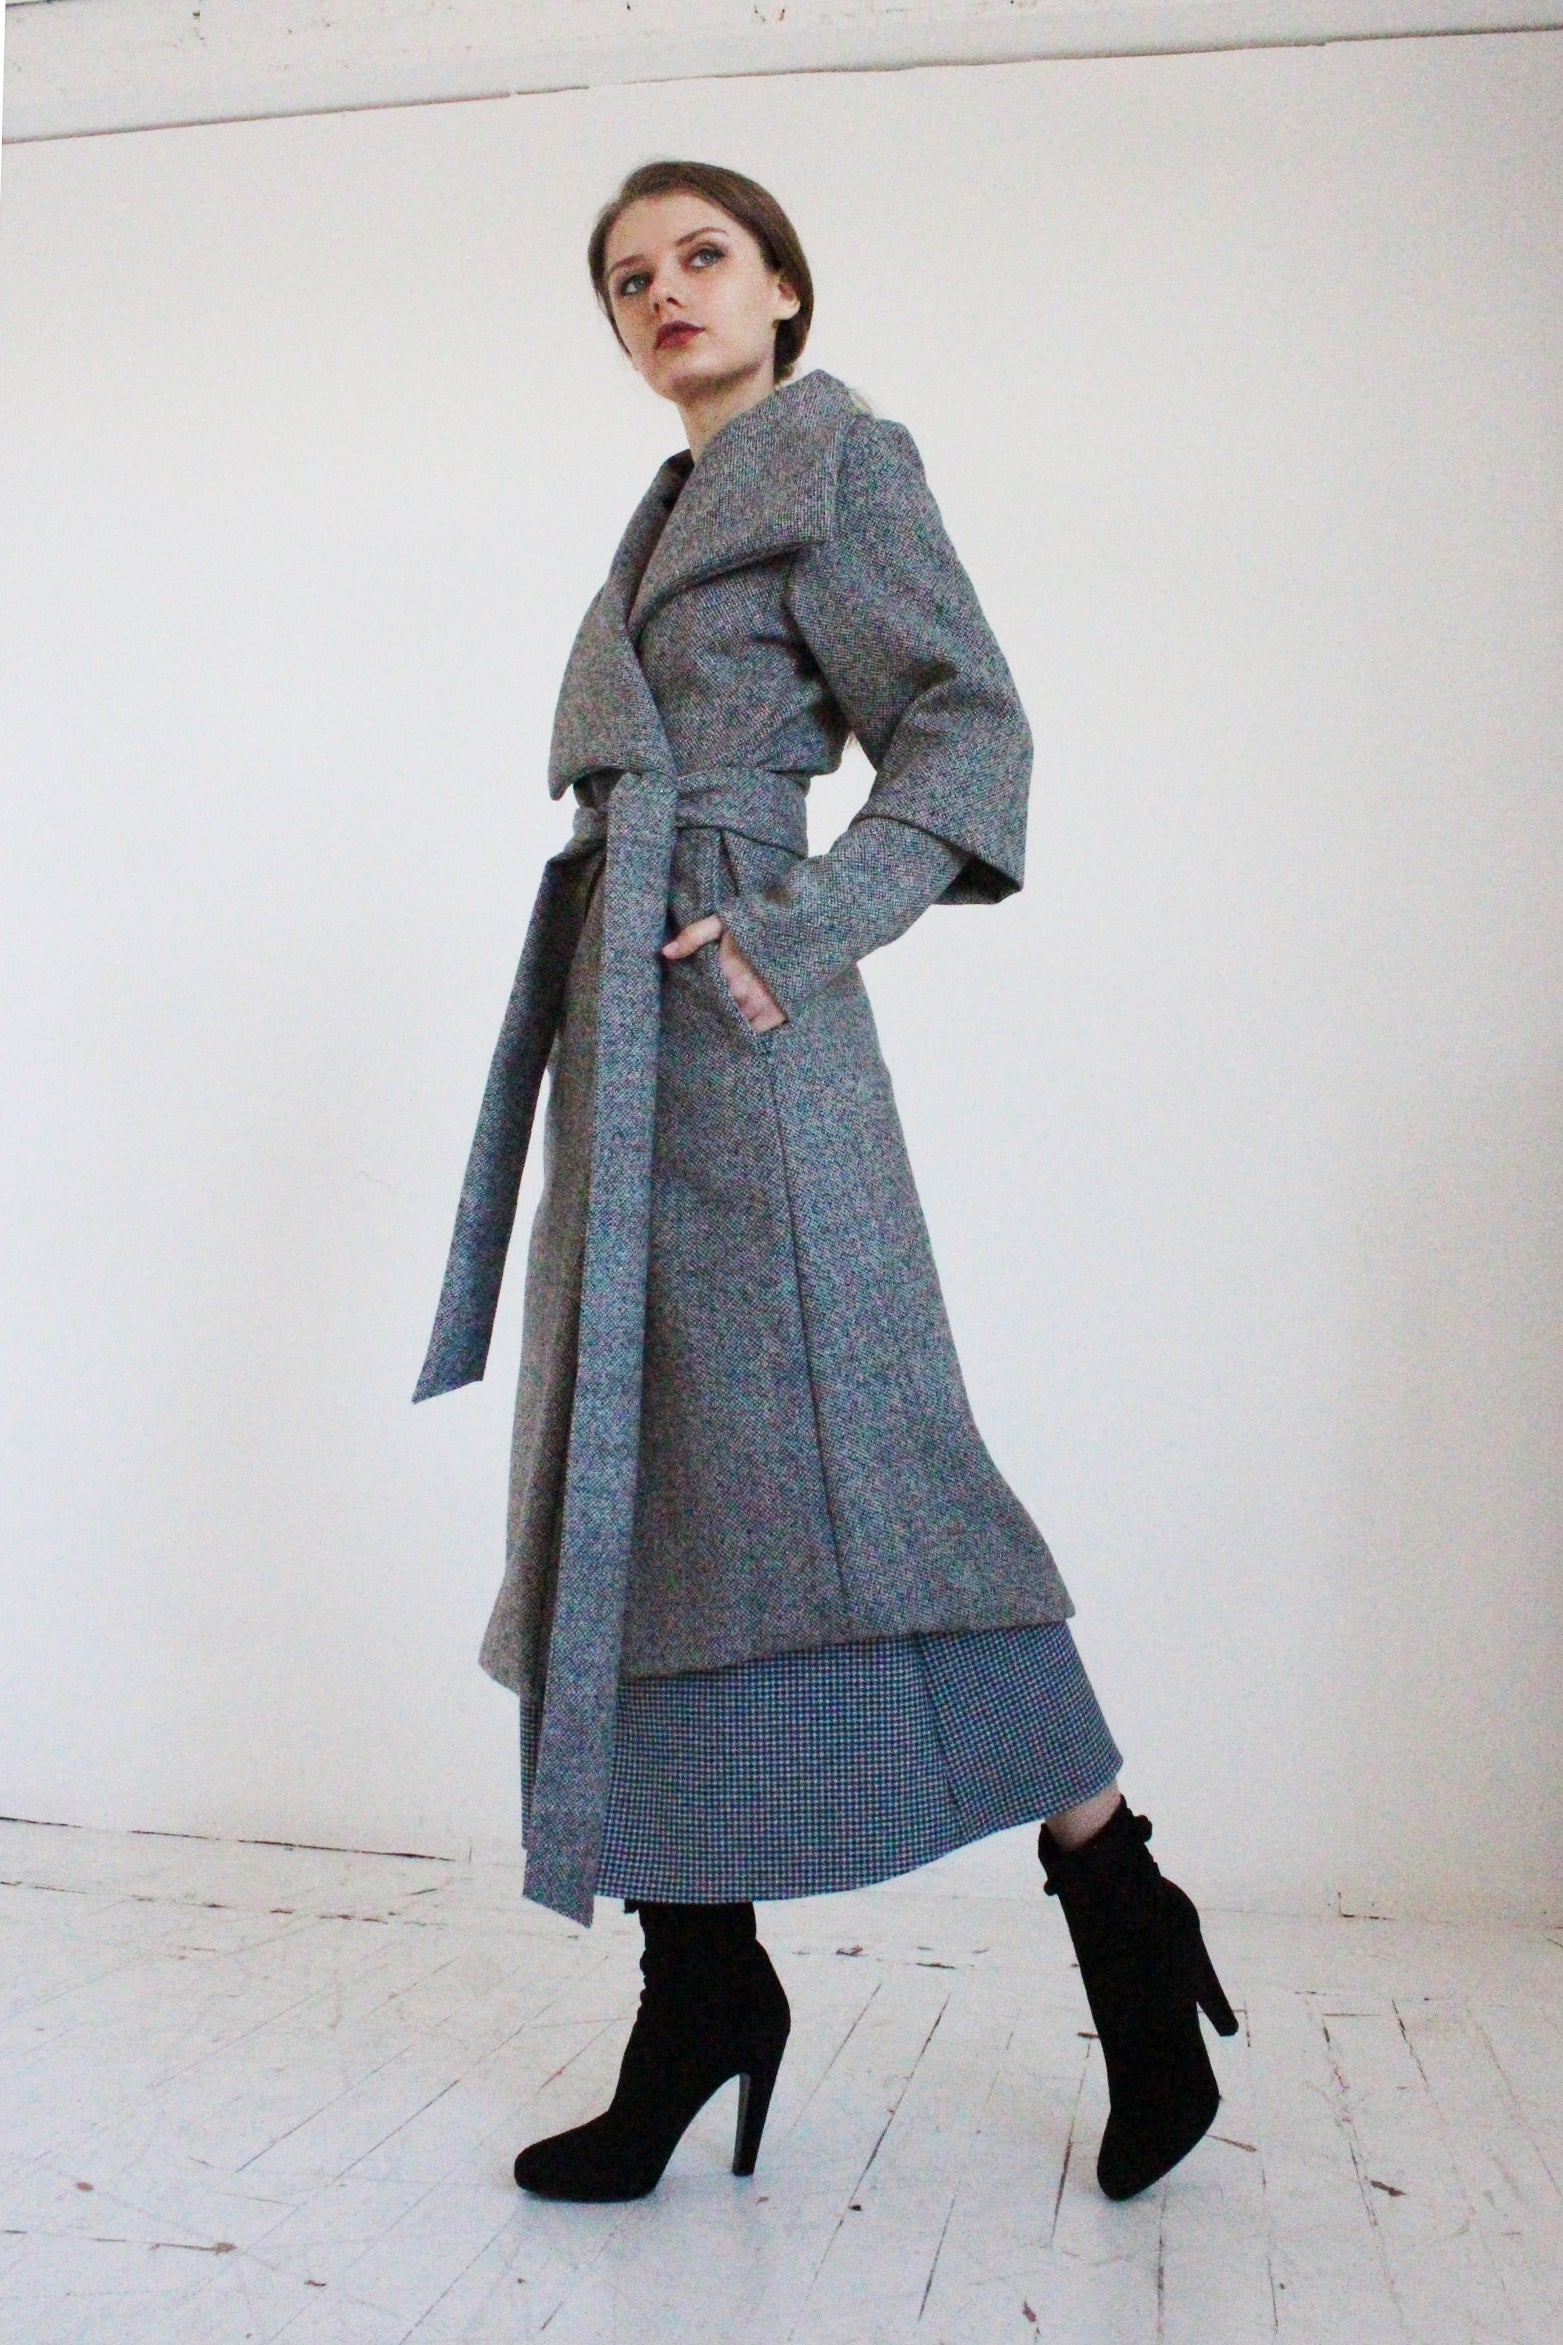 Ying Cai _ AW 21 Look 3 - 8